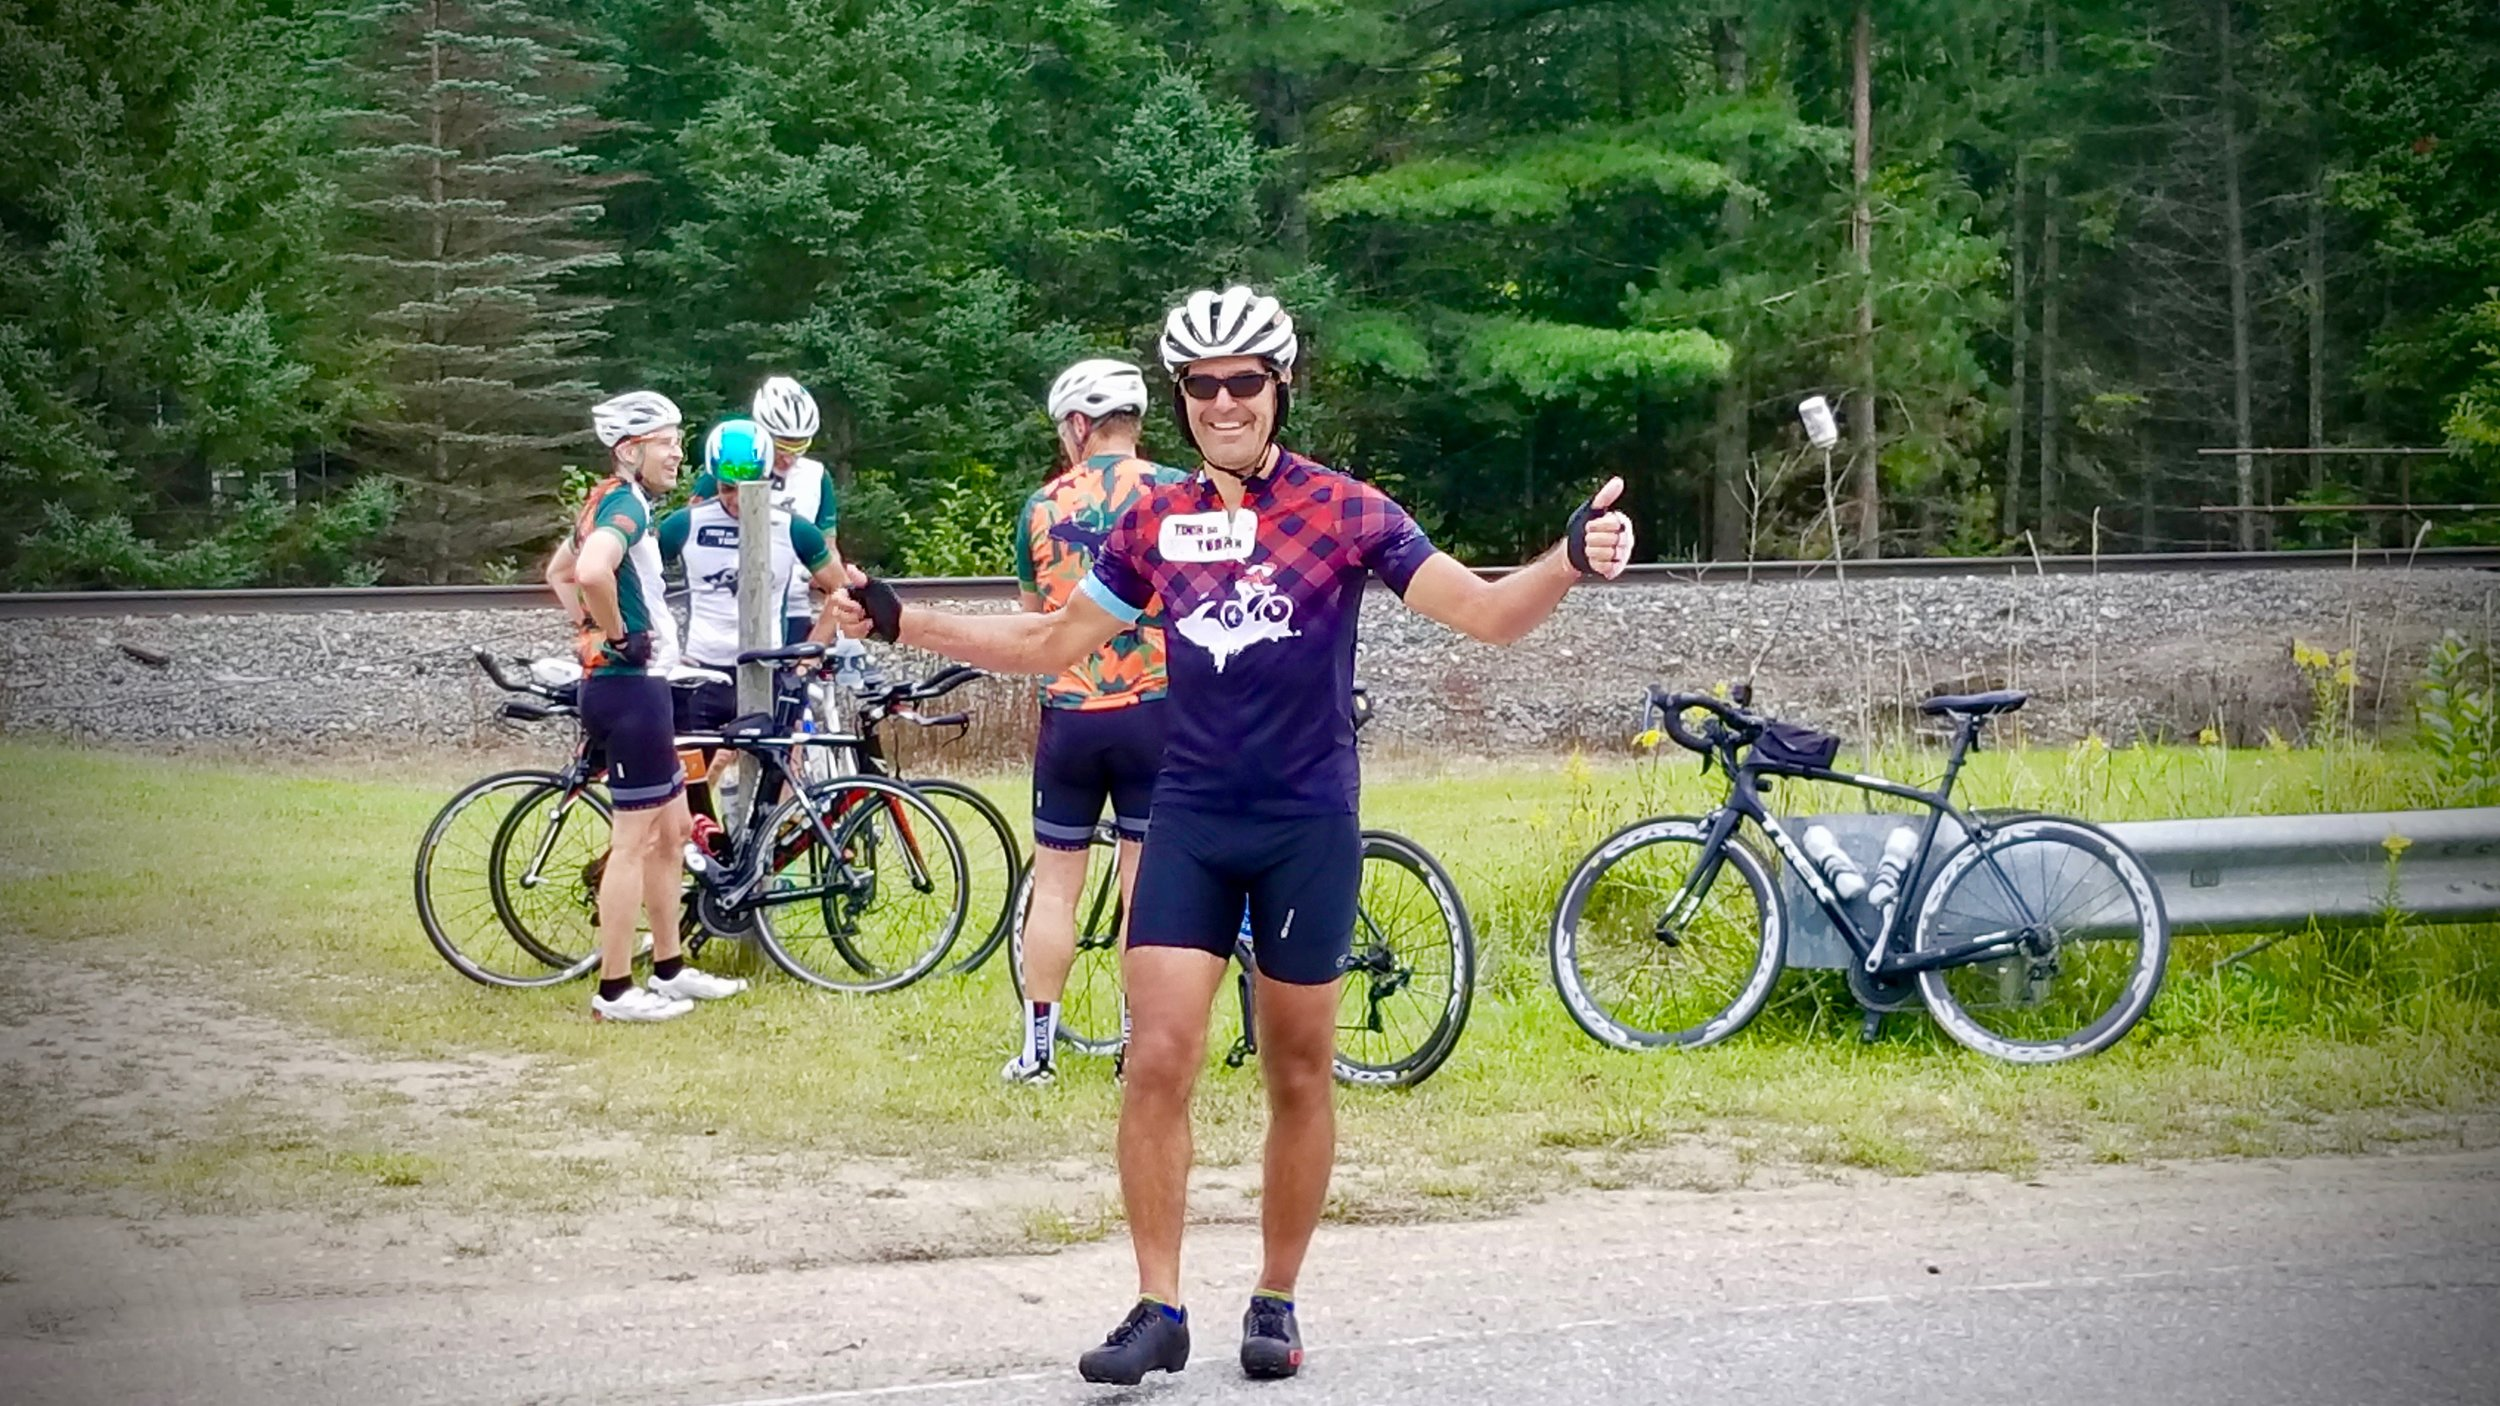 How Do You Get the Plaid Jersey? - Simple but definitely not easy. You just have to complete all 10 sections of the 1,200 mile Tour Da Yoop, Eh! It doesn't matter if it takes you 10 years or 10 days - you'll get something worth bragging about.